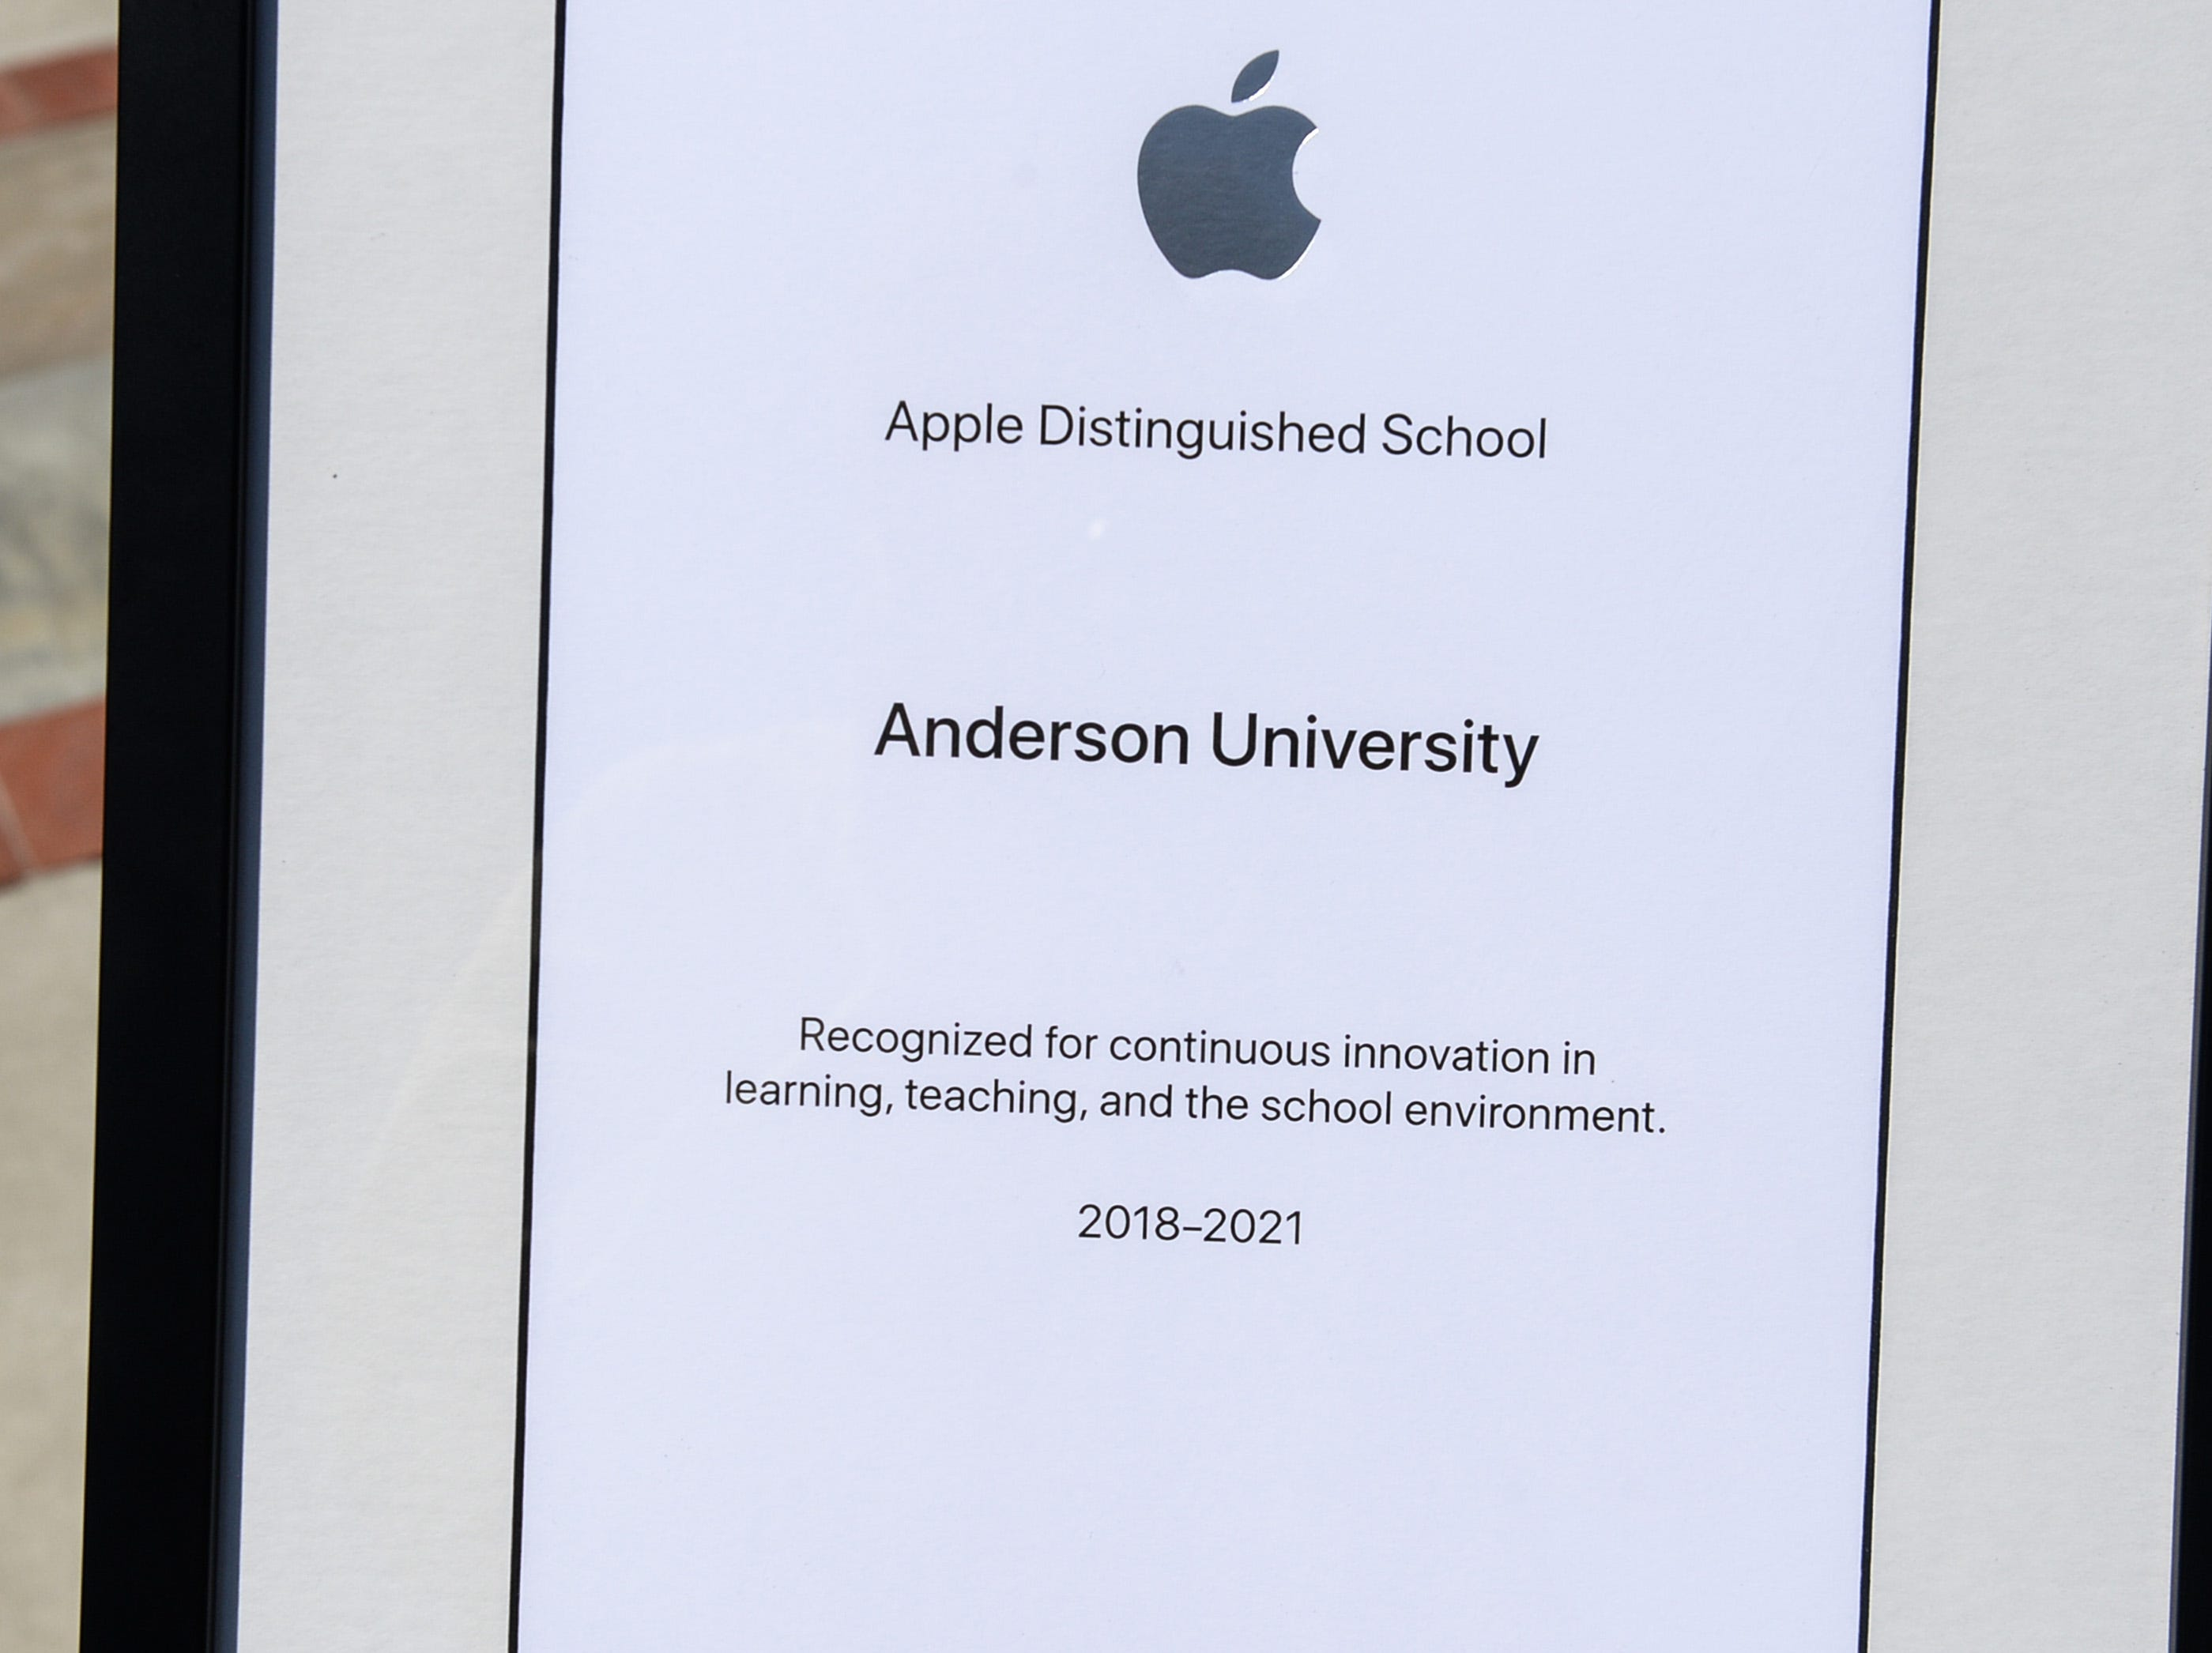 Apple Distinguished School award at Anderson University in Anderson Tuesday. It was the third time receiving the distinction since the school started a digital learning initiative in 2011.